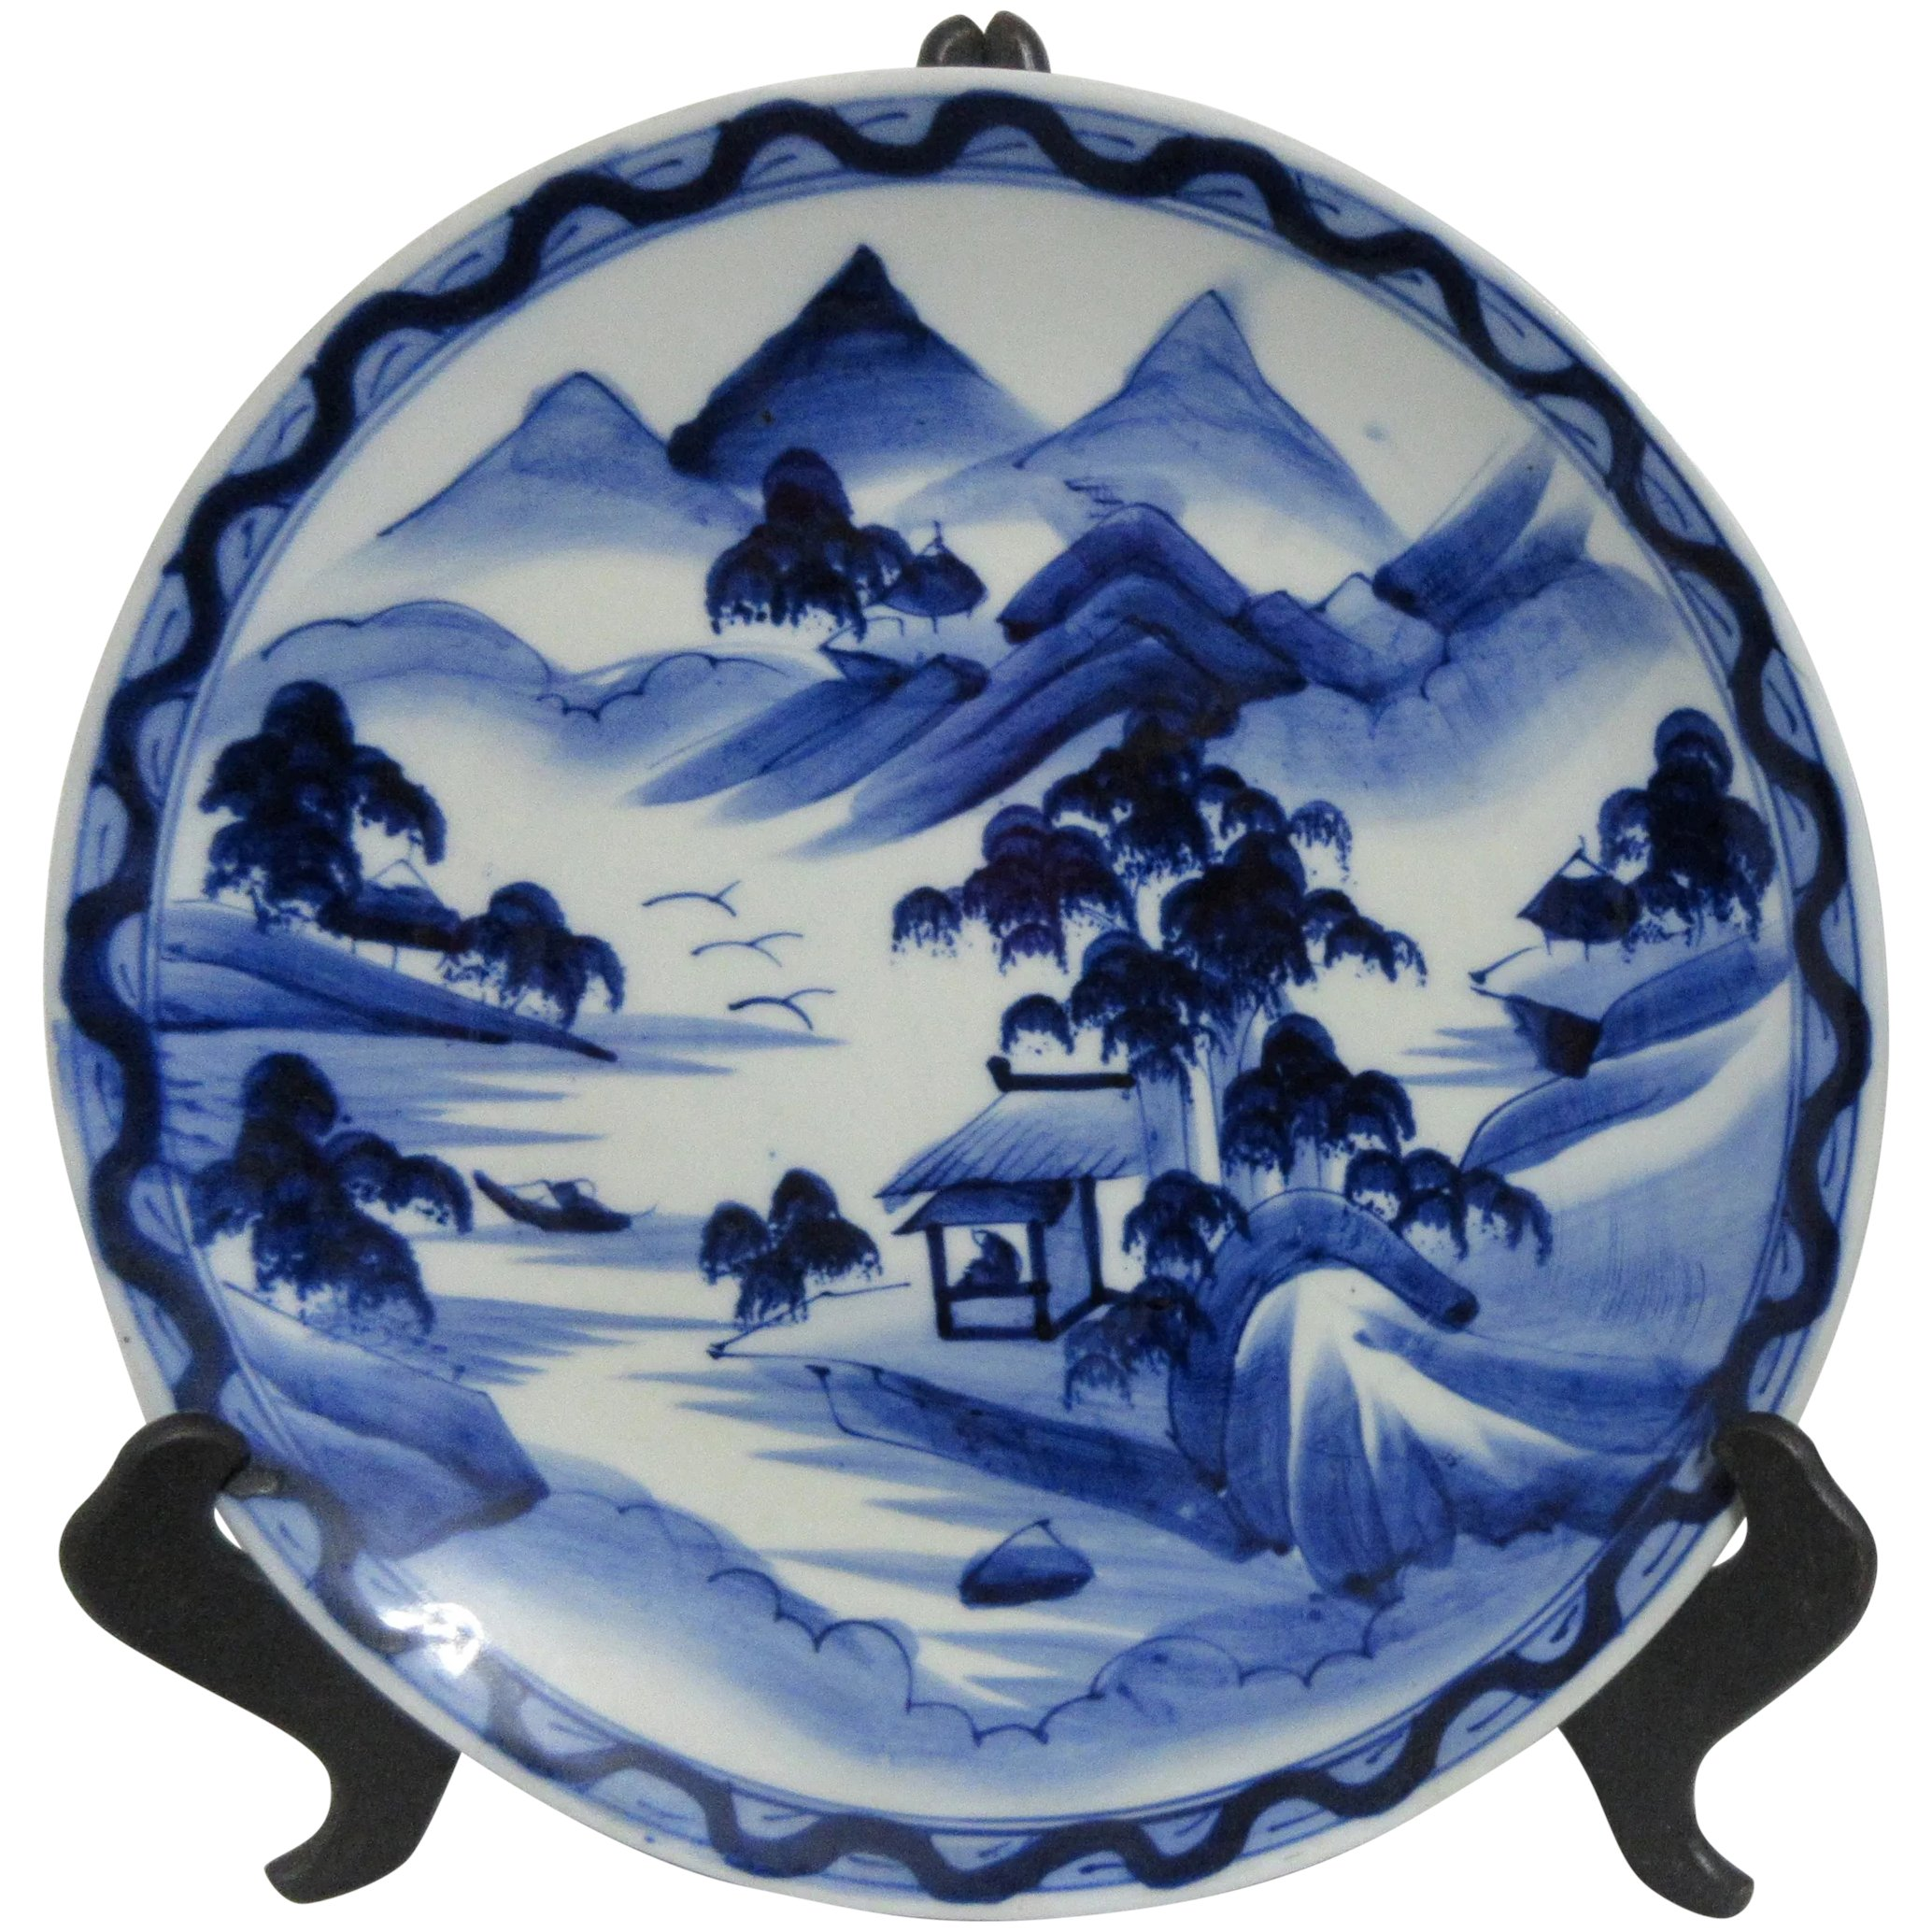 Vintage Japanese Blue And White Hand Painted Charger Plate Something Wonderful Ruby Lane